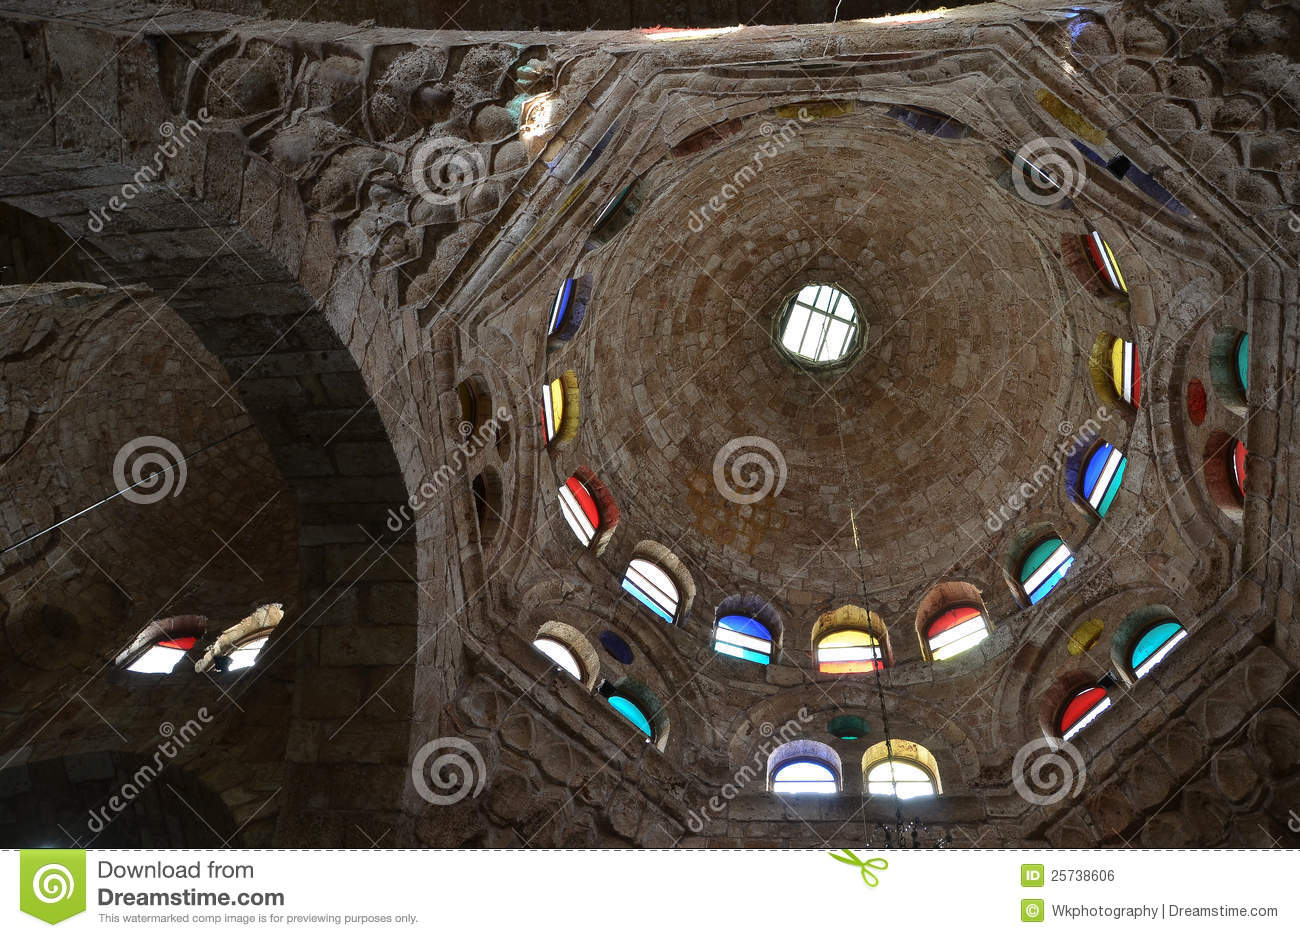 Dome of a mosque inside